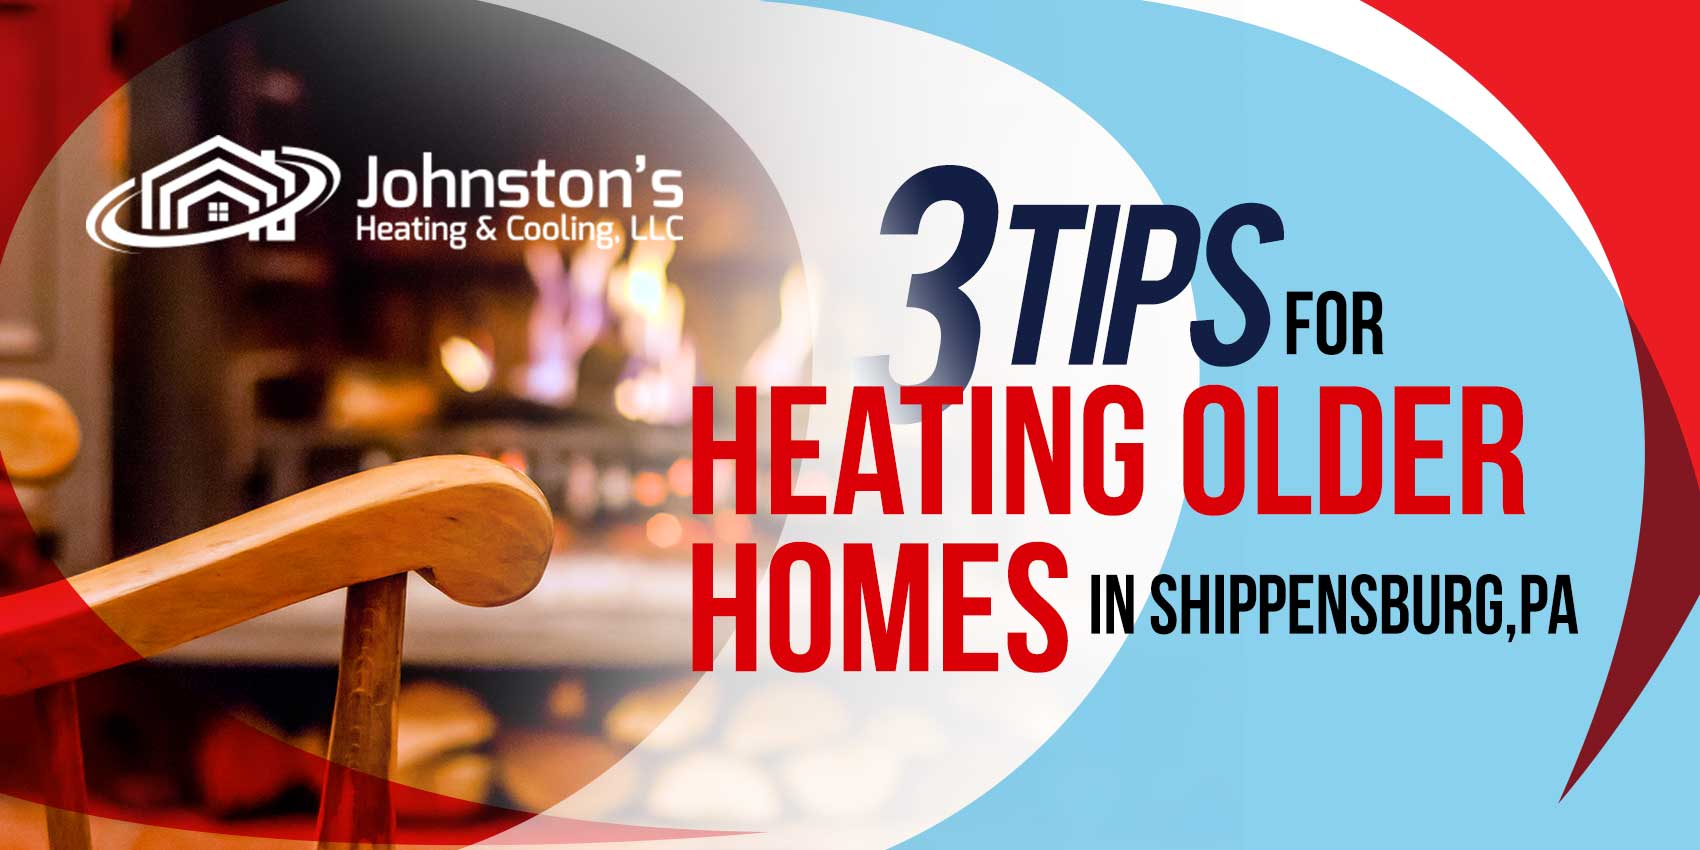 3 Tips for Heating Older Homes in Shippensburg, PA